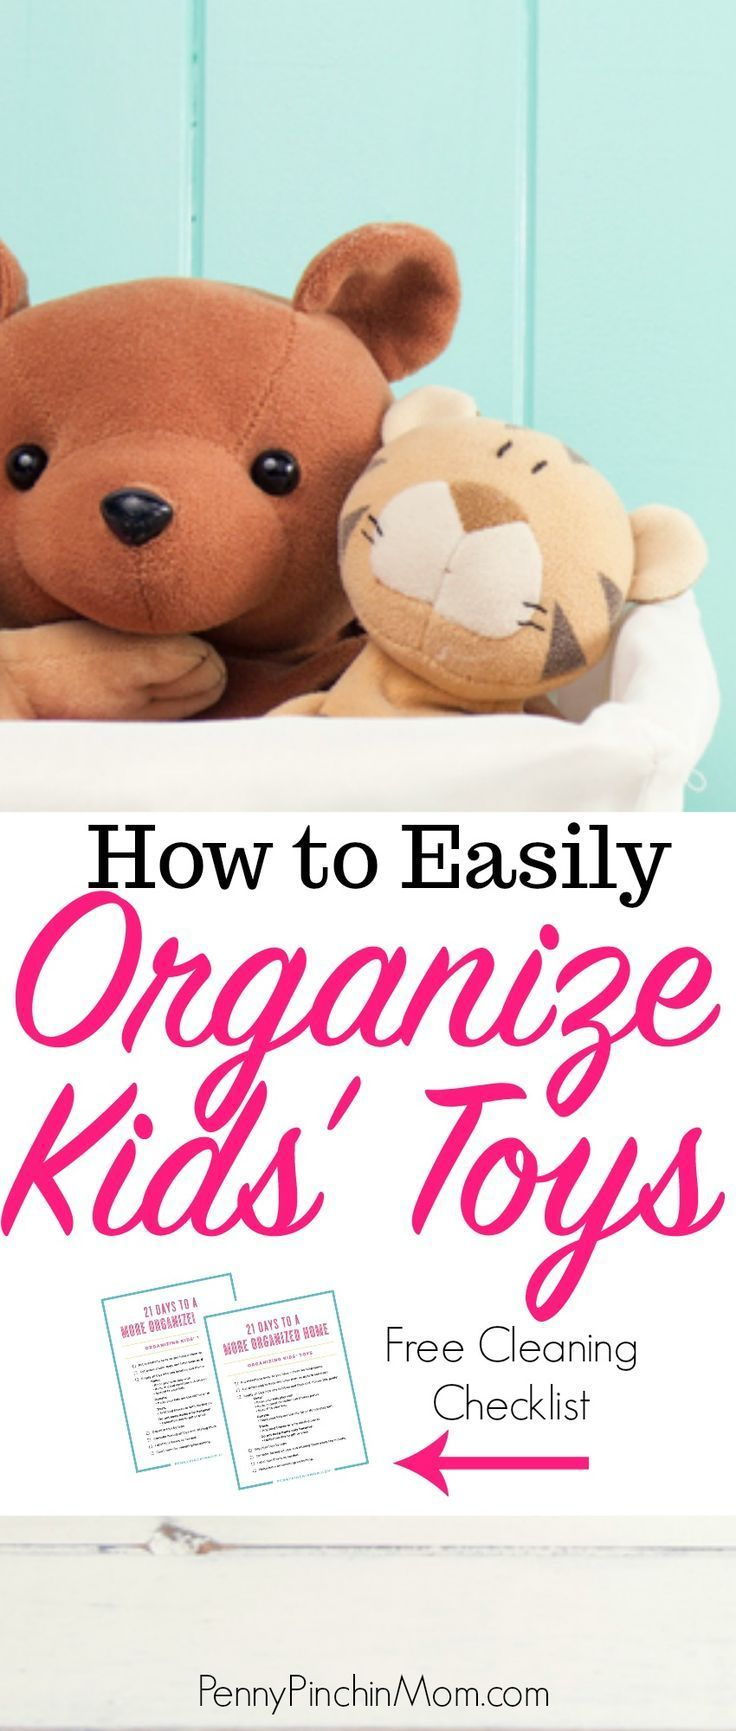 Toys Taking Over  Get My Tricks for Getting Them Organized is part of Organization Bedroom Kids - Kids' toys tend to take over their room  Find out how I keep three kids' rooms organized and clutter free  no matter how many toys they have!